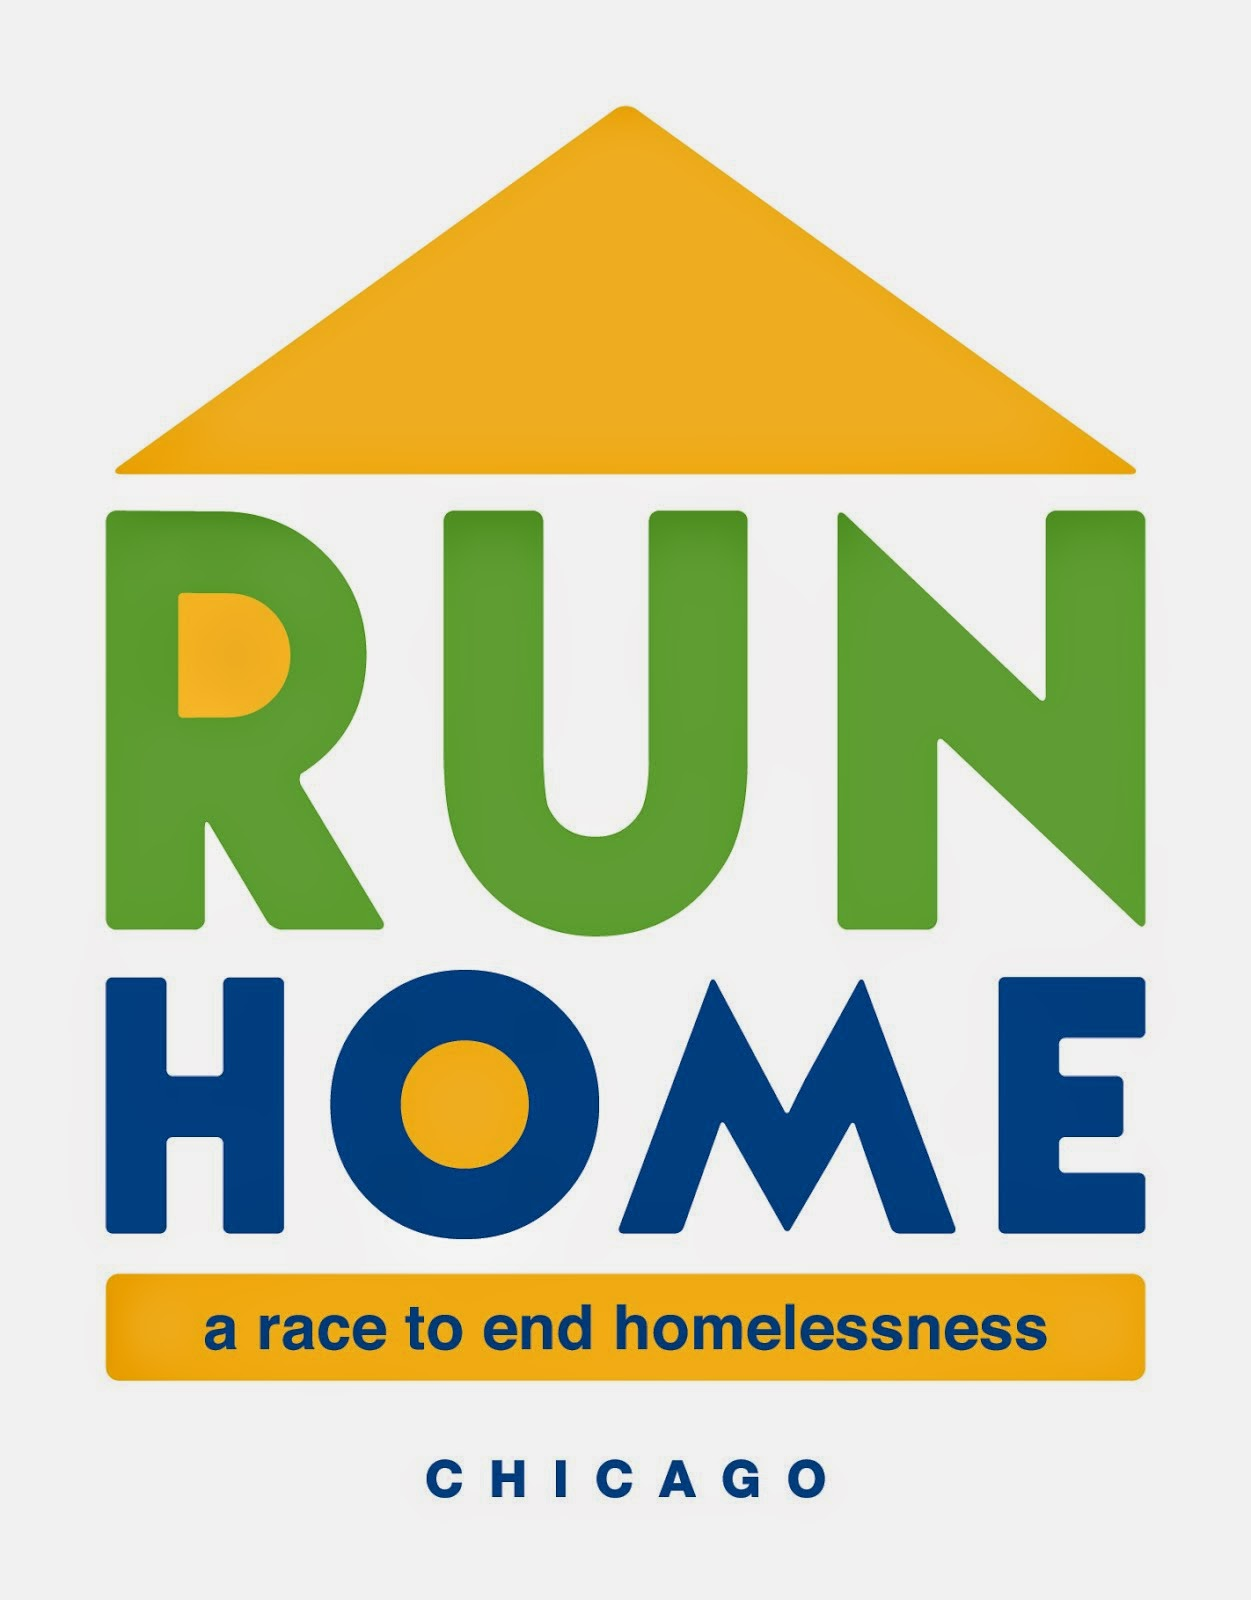 Sign up/donate to help fight chicago homelessness